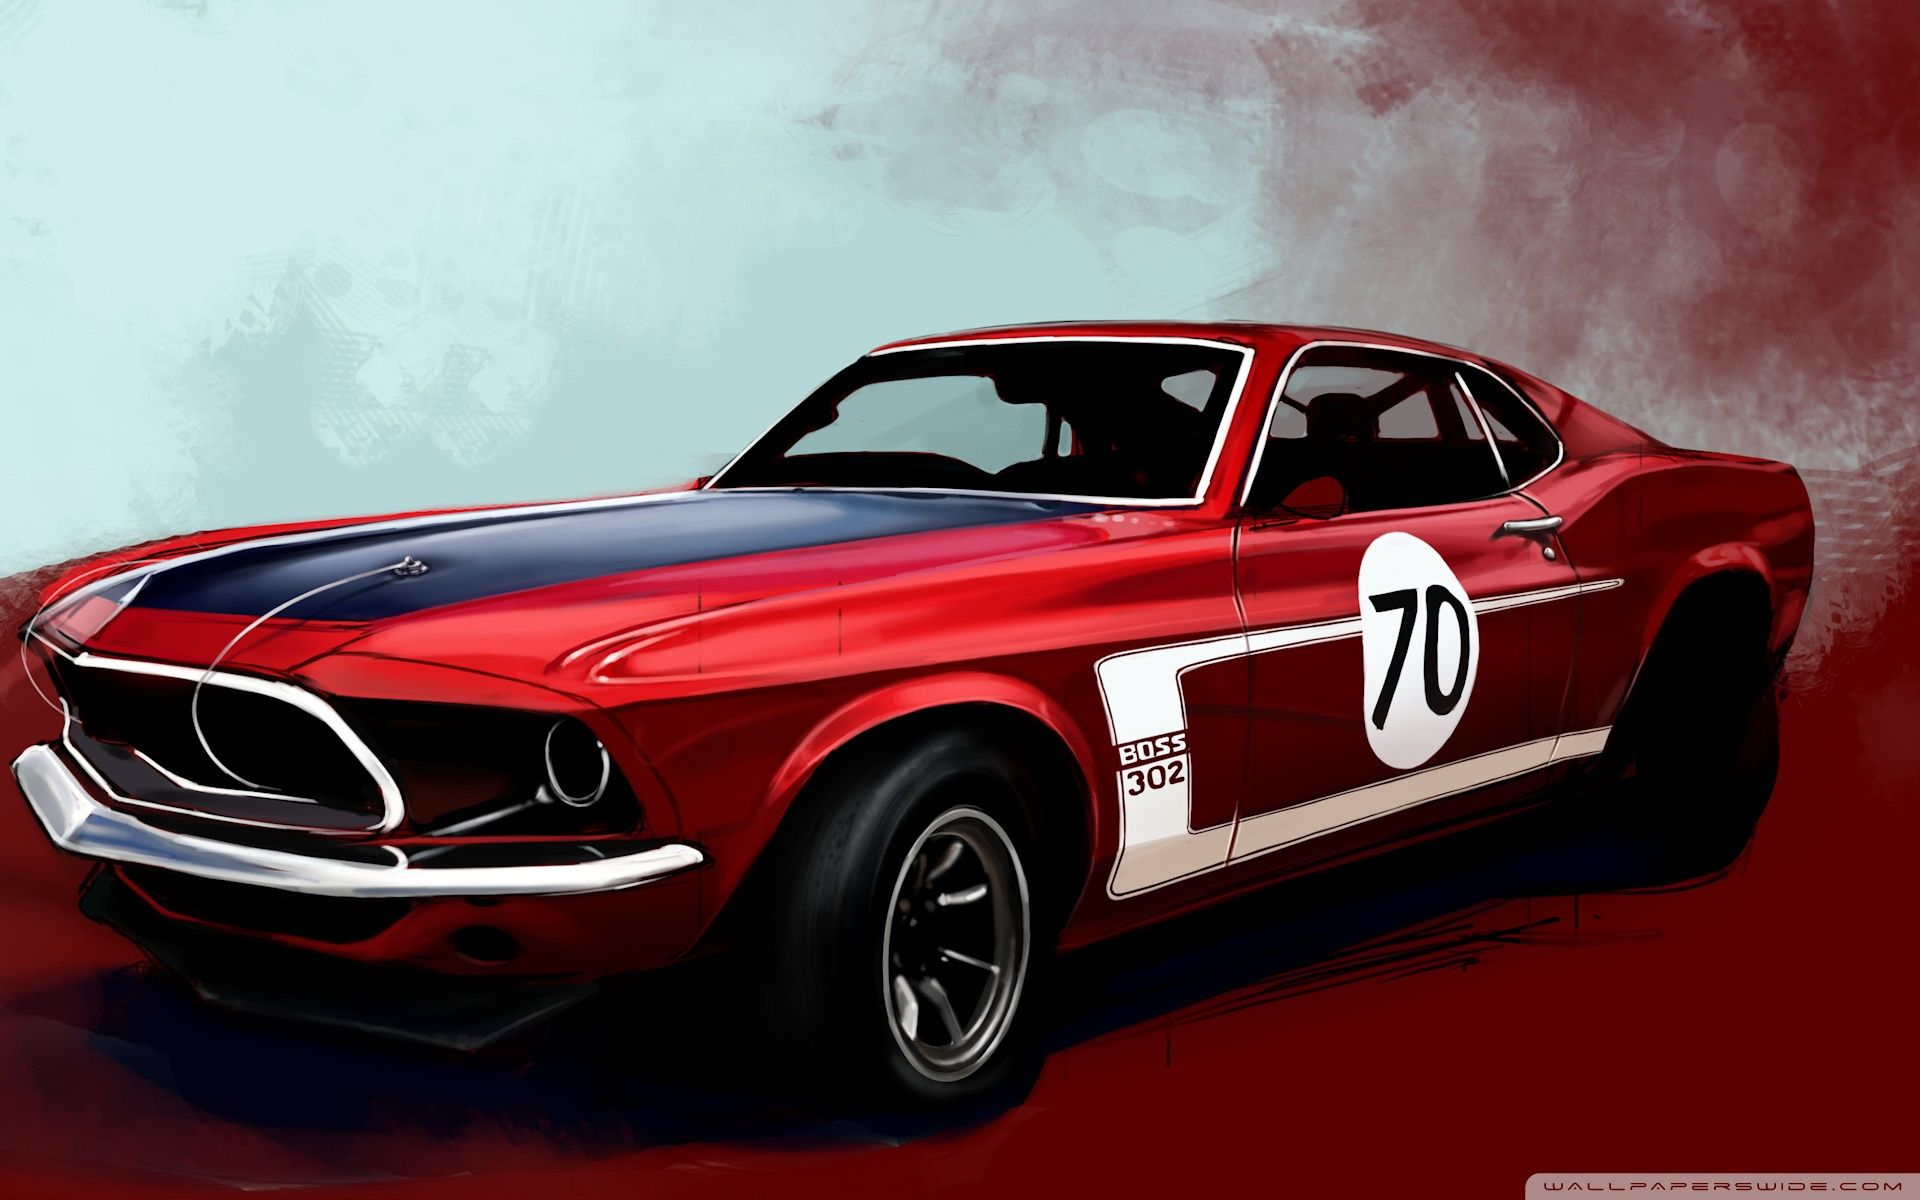 Ford Mustang Boss Classic Car Hd Desktop Wallpaper Cars